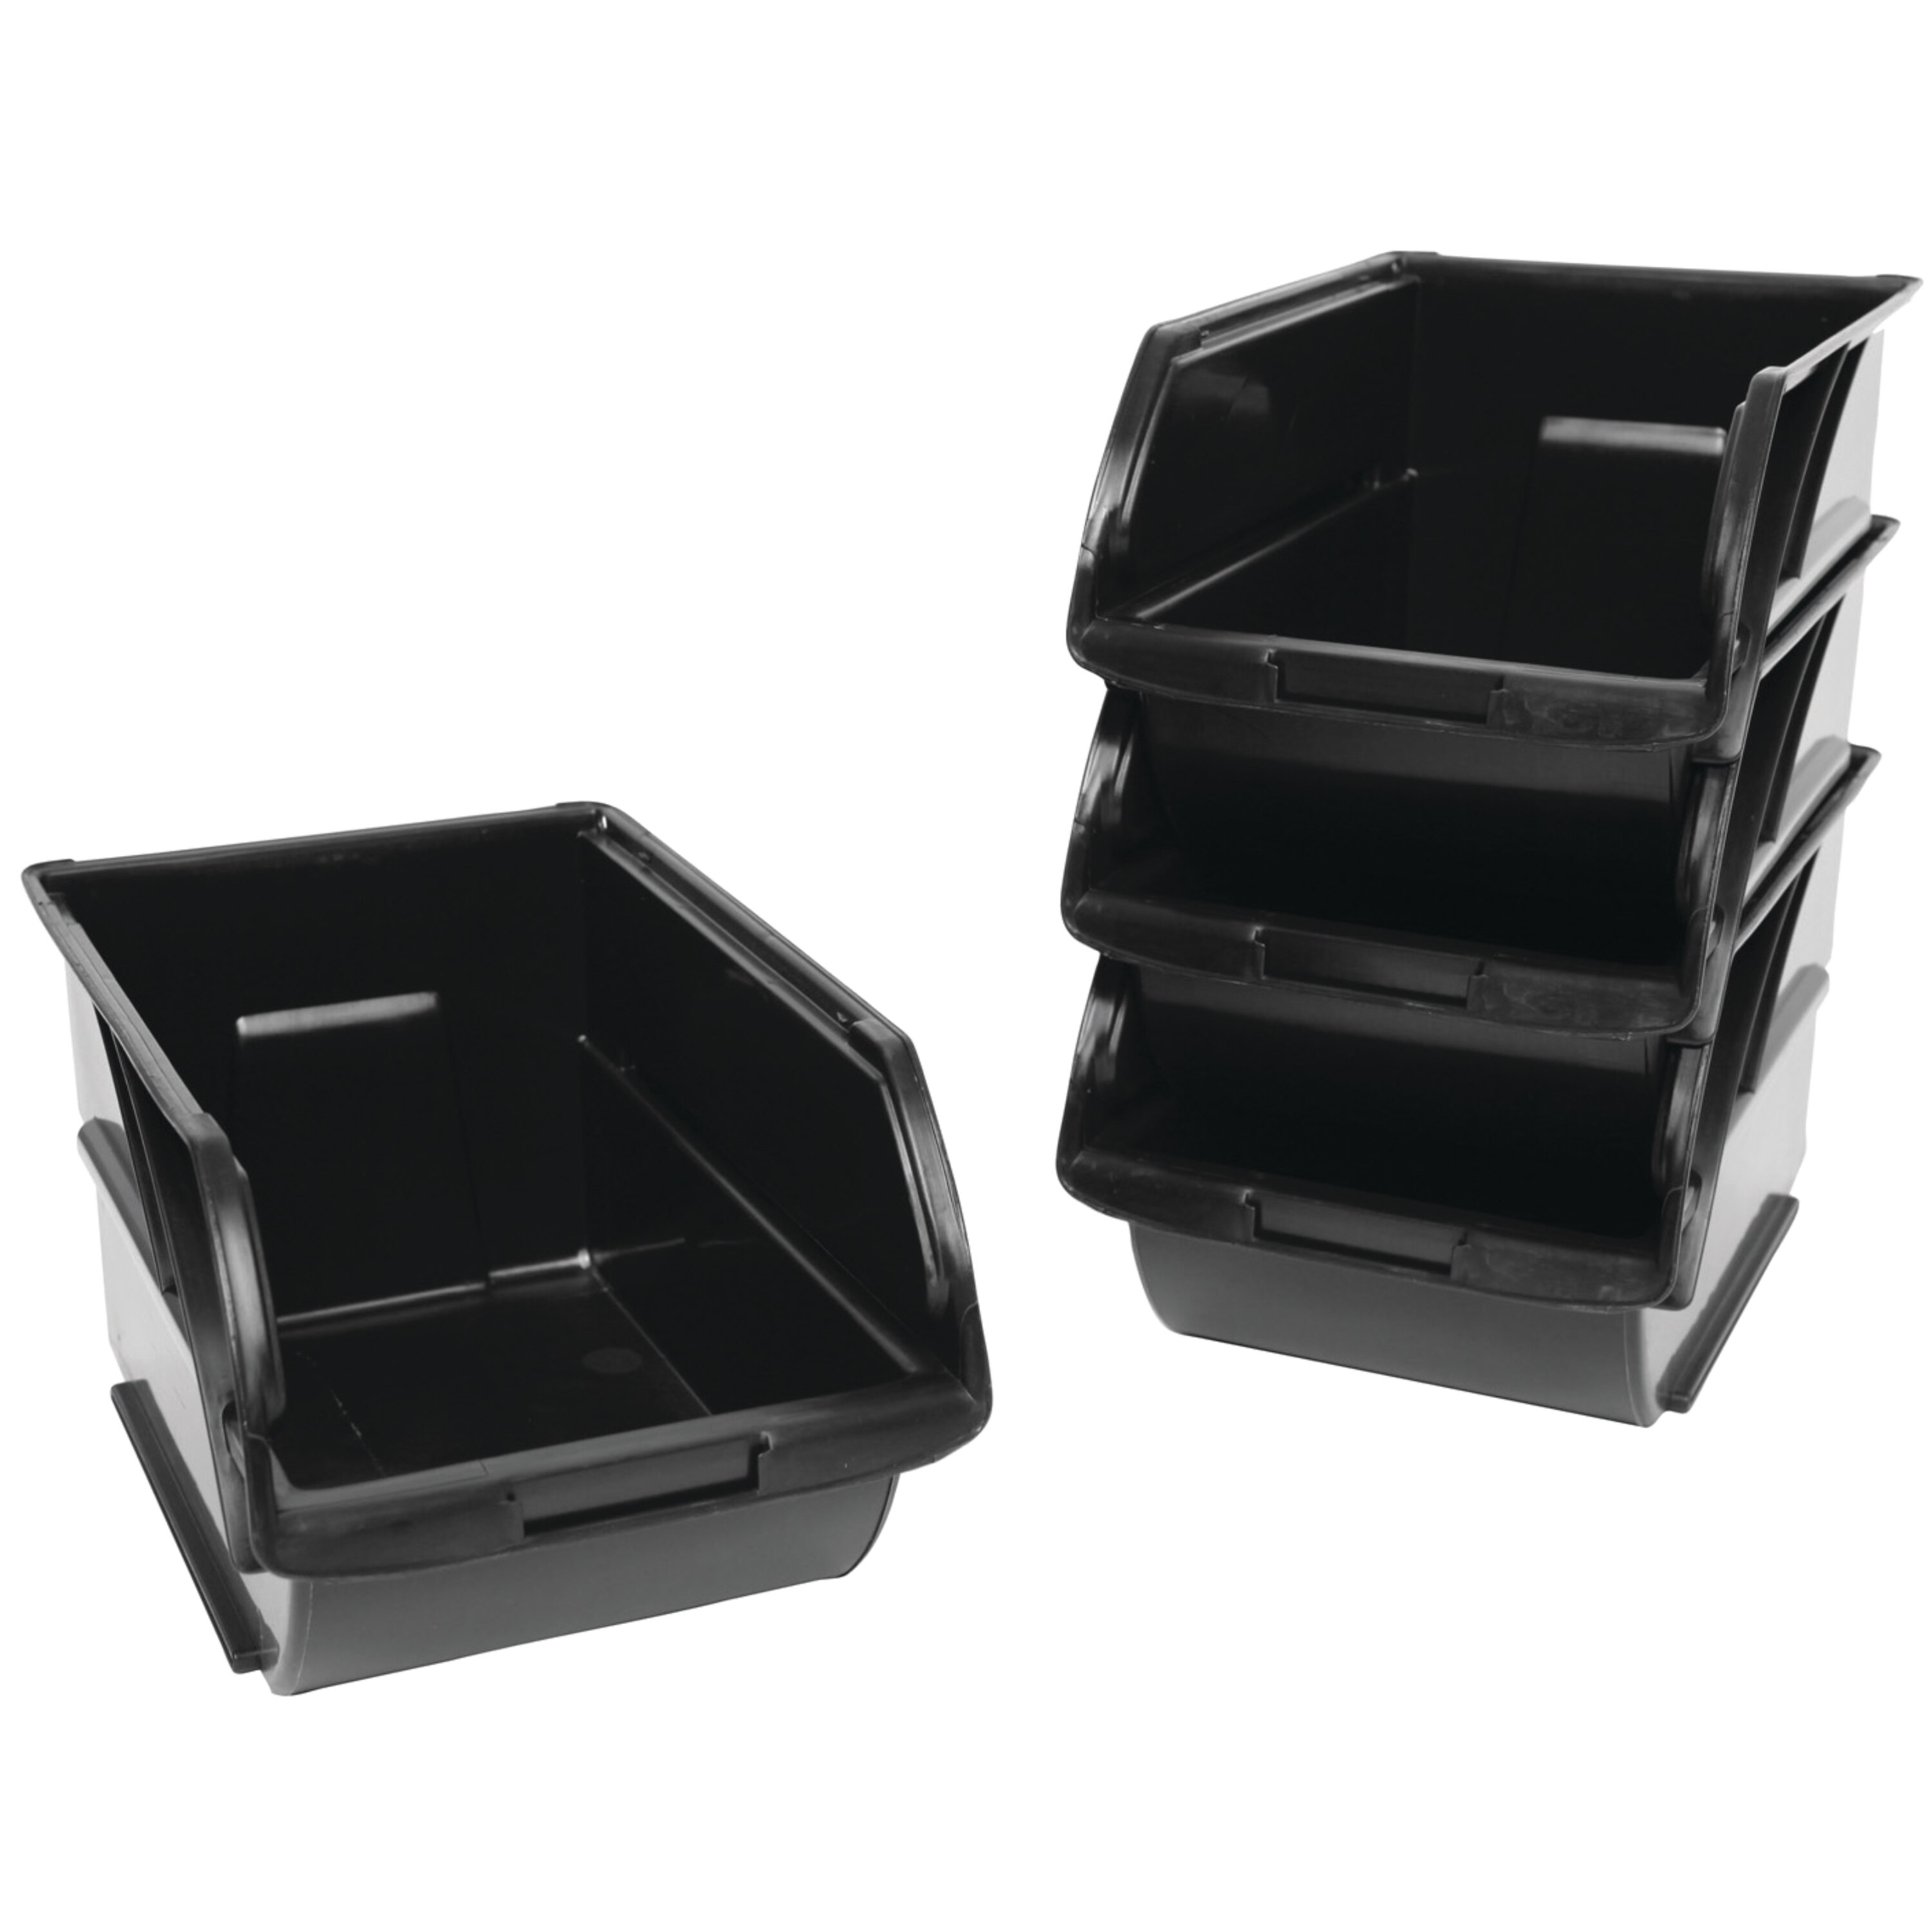 Stanley Tools - 4 pk Storage Bins with Wall Hangers - 057304R